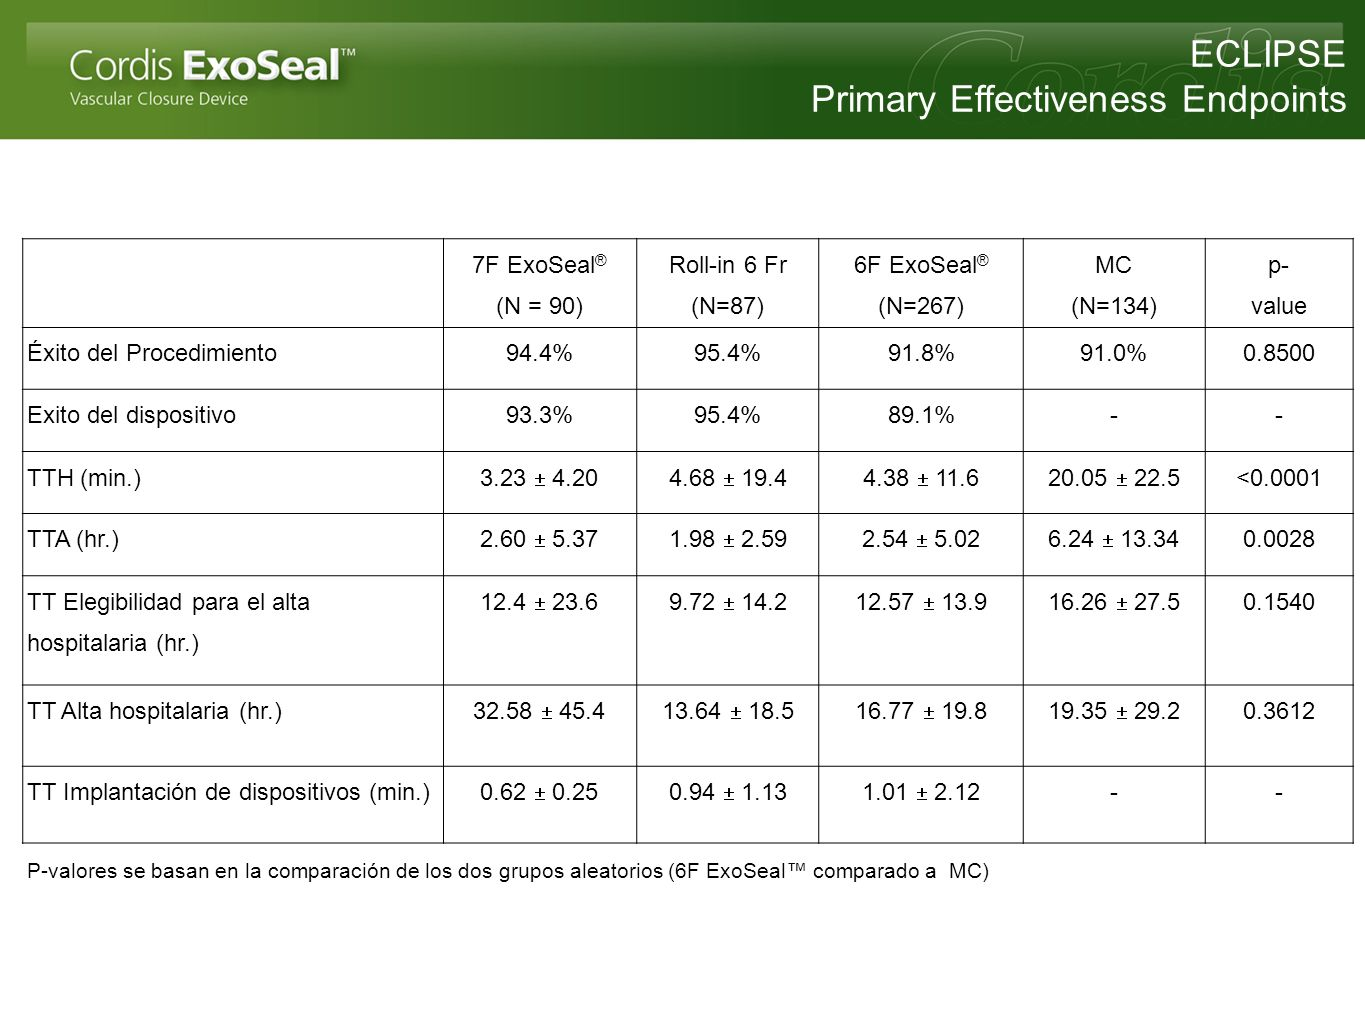 7F ExoSeal ® (N = 90) Roll-in 6 Fr (N=87) 6F ExoSeal ® (N=267) MC (N=134) p- value Éxito del Procedimiento94.4%95.4%91.8%91.0%0.8500 Exito del disposi